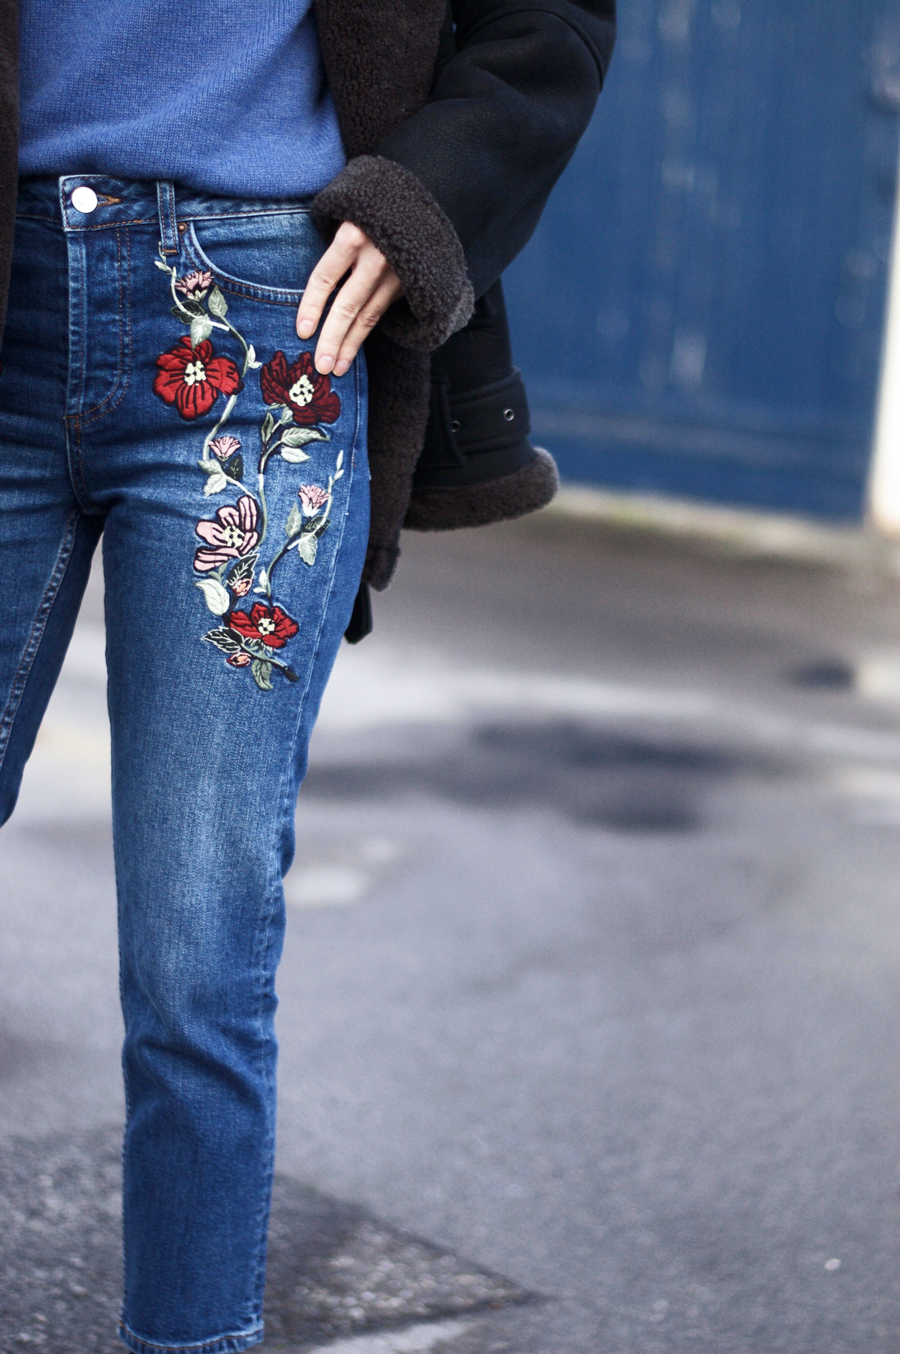 Puppy Eyes & A Colourful Touch to Denim